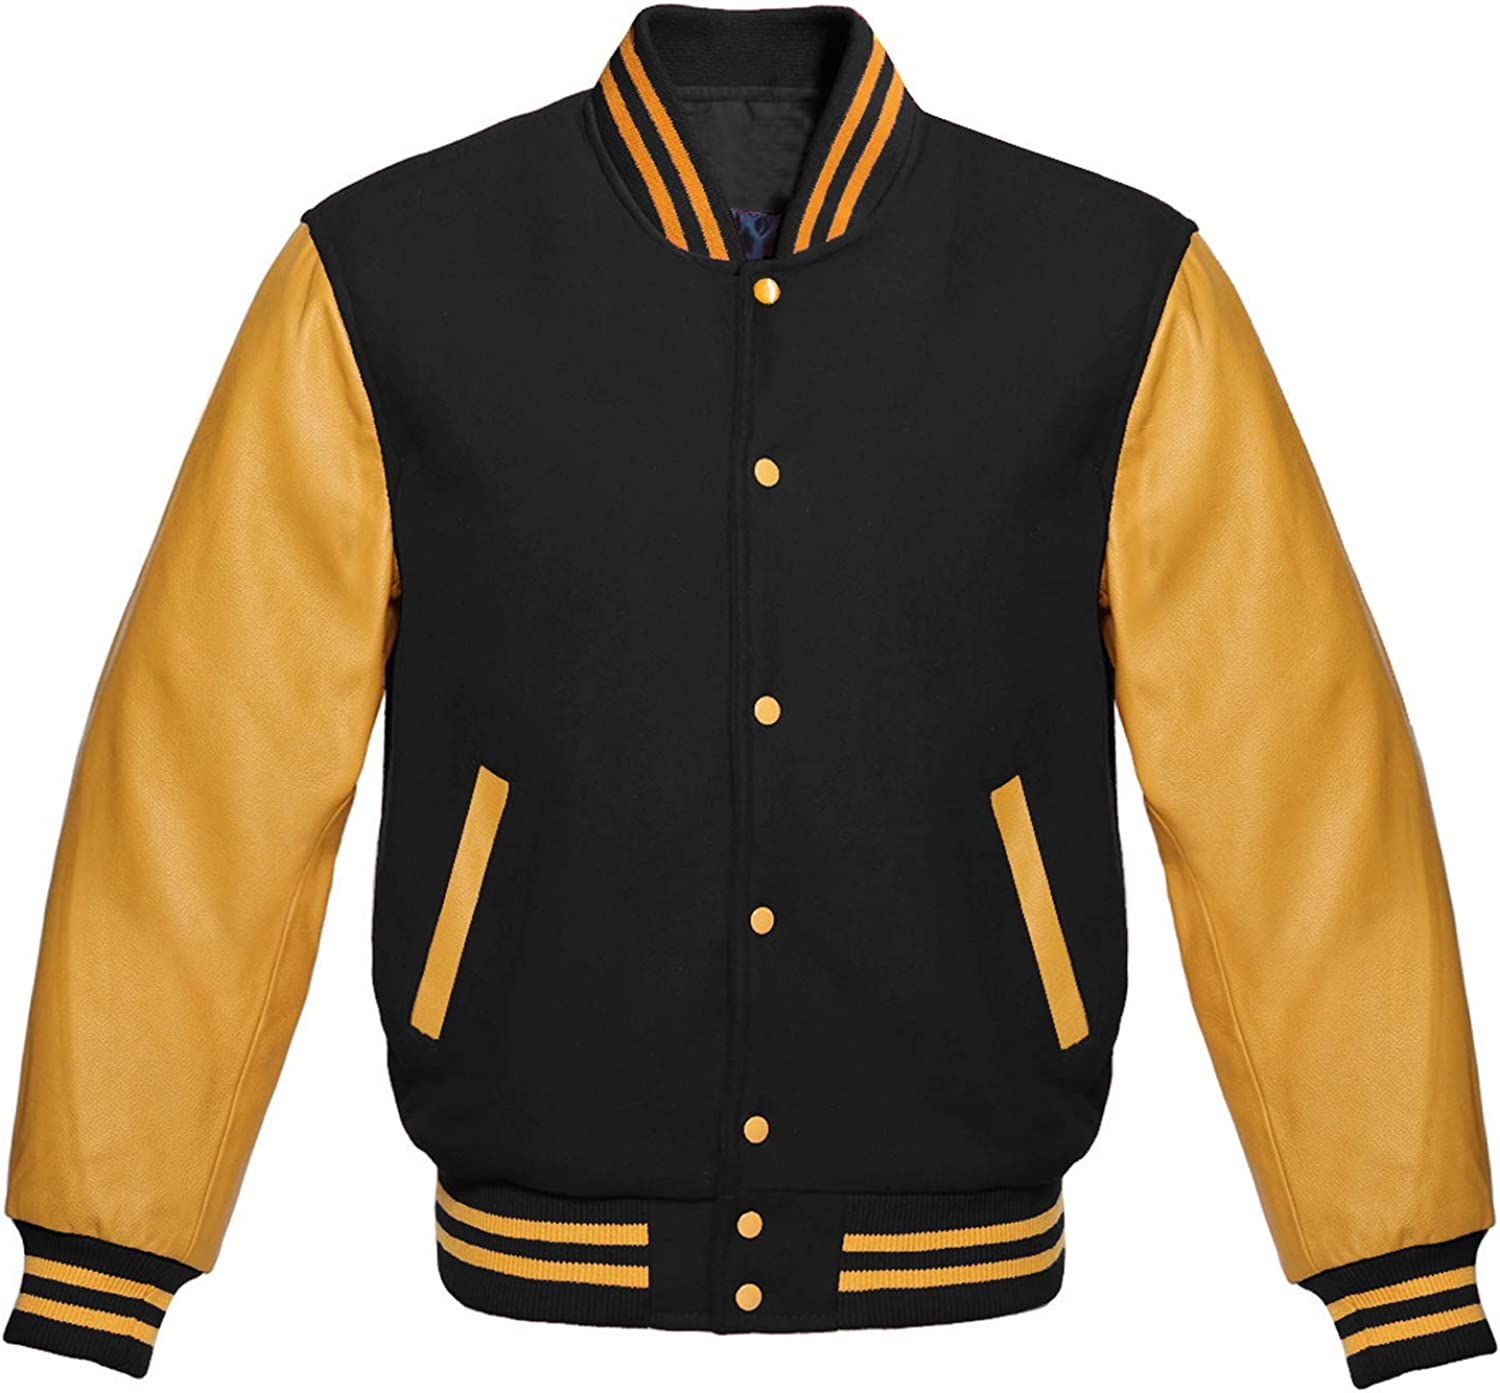 CHICAGO-FASHIONS Mens Letterman Varsity Jacket - Wool and Faux Leather City School College Bomber Jacket Collection